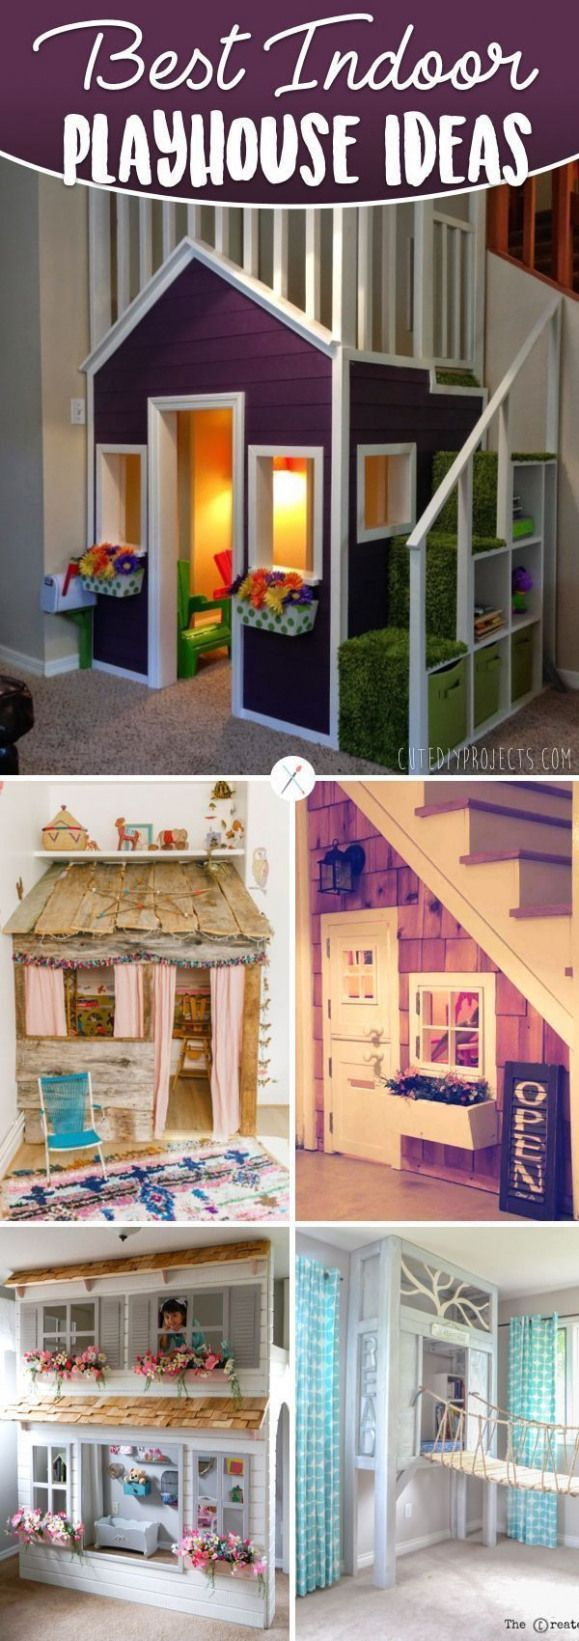 Photo of 20 Indoor Playhouse Ideas for a Small World for Your Kids #buildpl … -,  #buildpl #ideas #I…